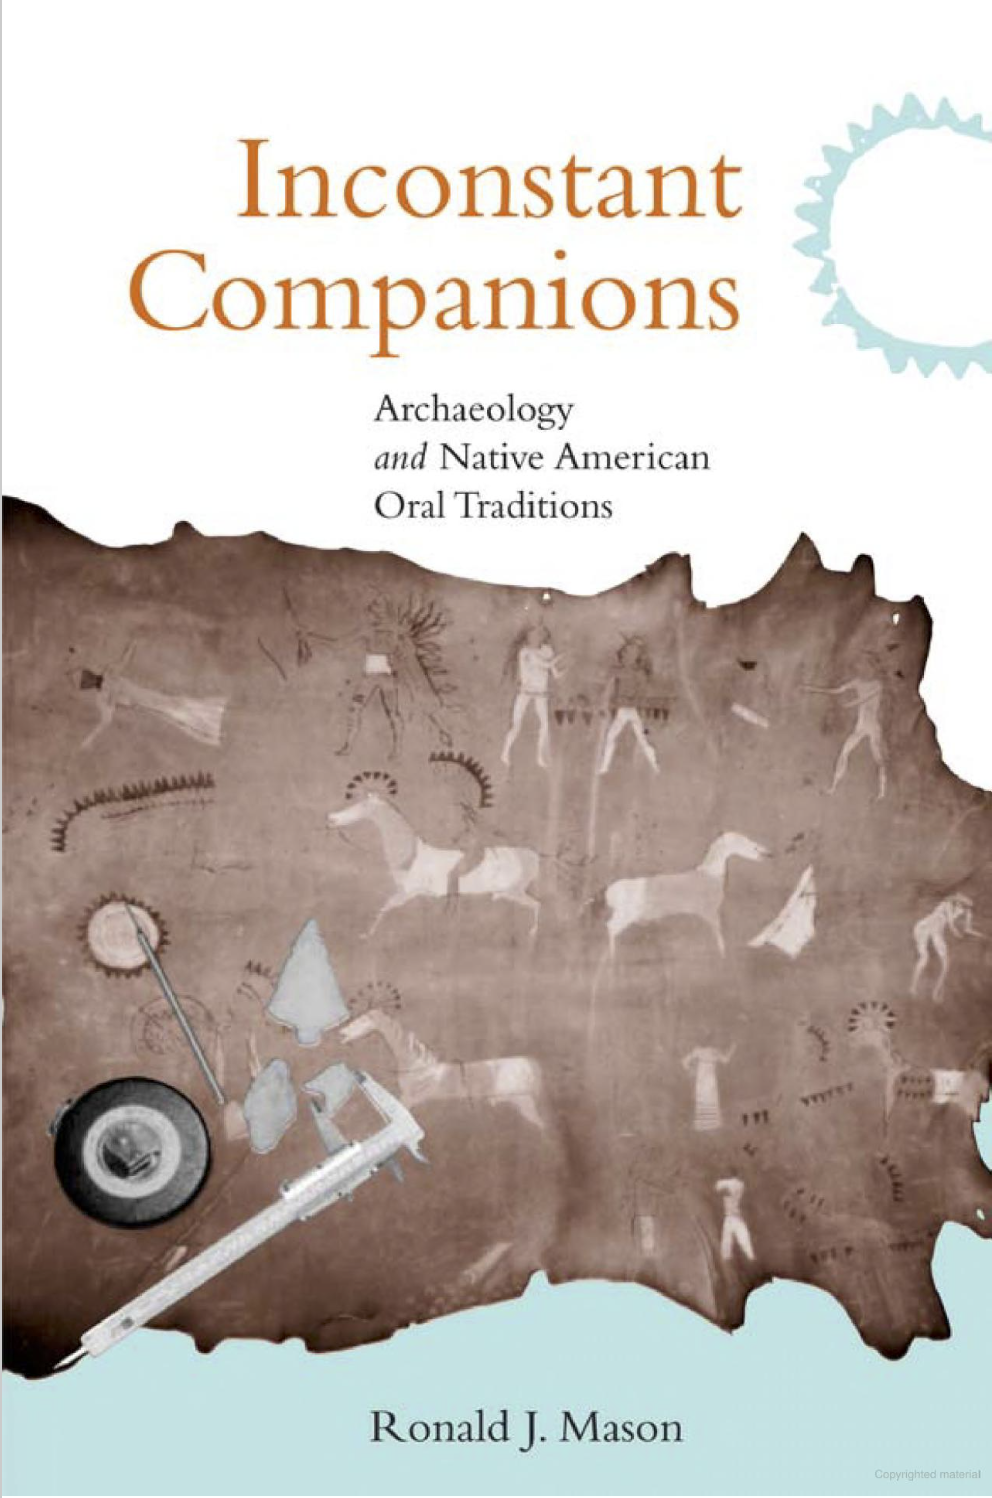 Cover image for Inconstant companions: archaeology and North American Indian oral traditions